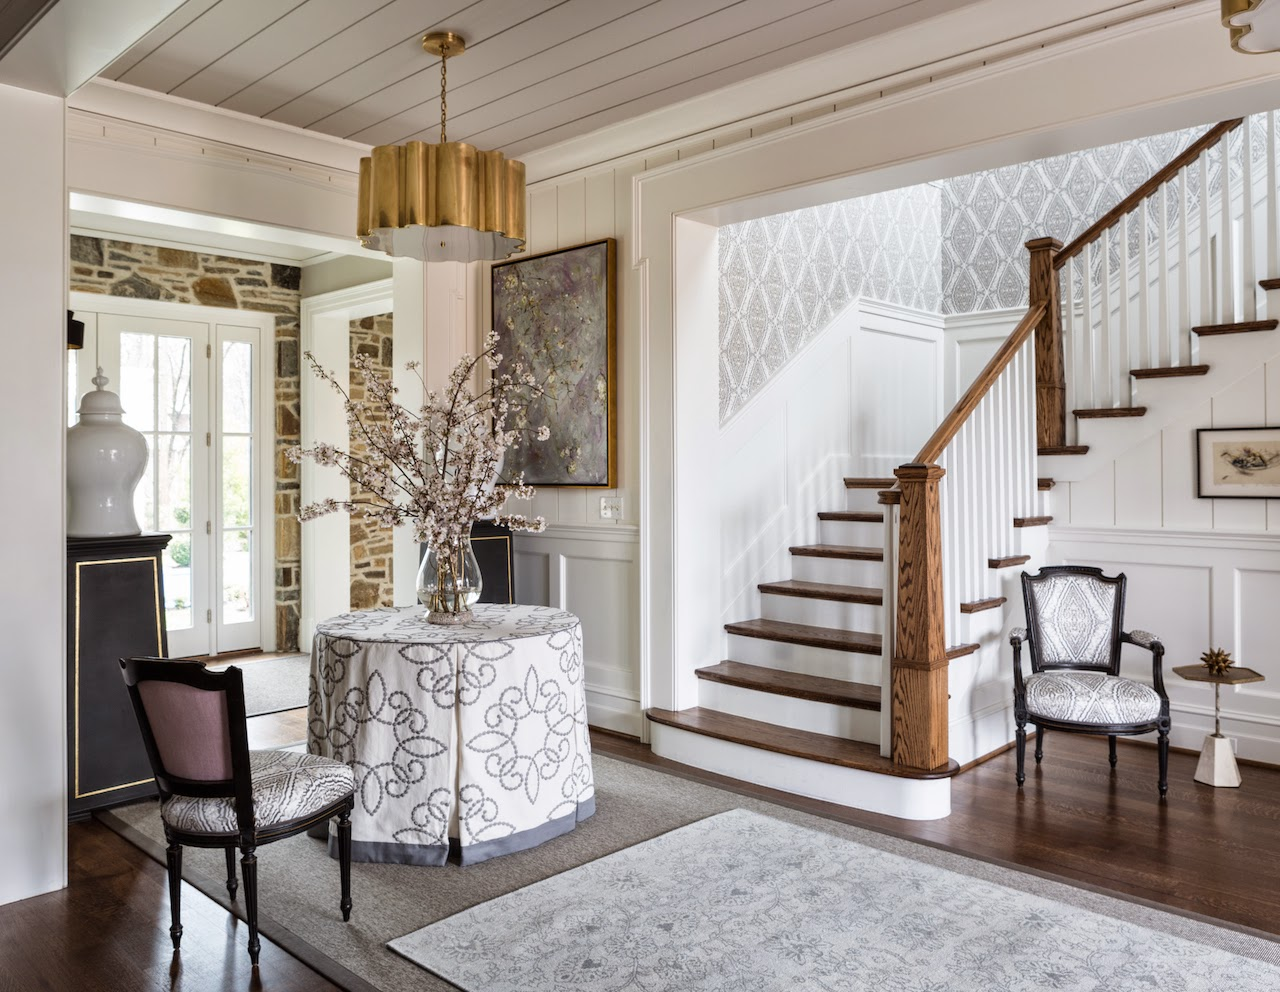 powell brower at home: The DC Design House, Part I